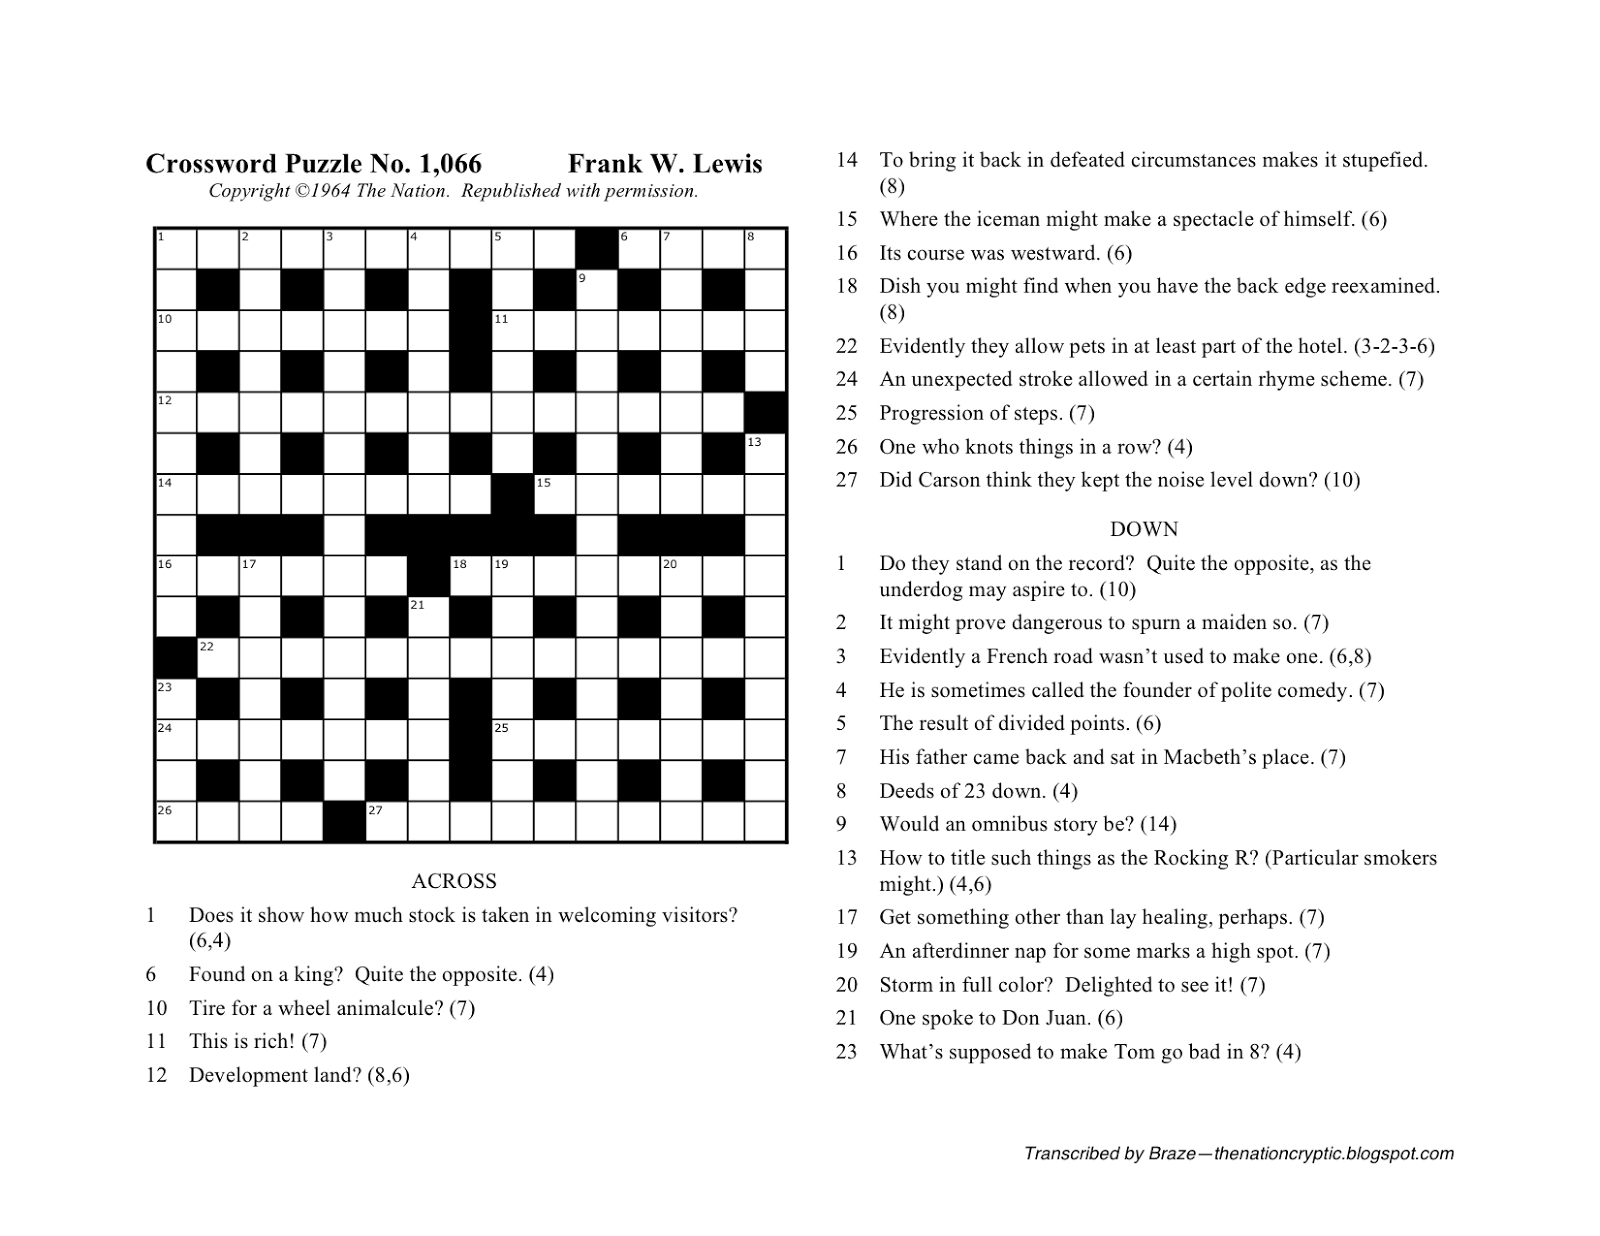 image relating to Cryptic Crosswords Printable named The State Cryptic Crossword Discussion board: Nat Hentoff (Puzzle No